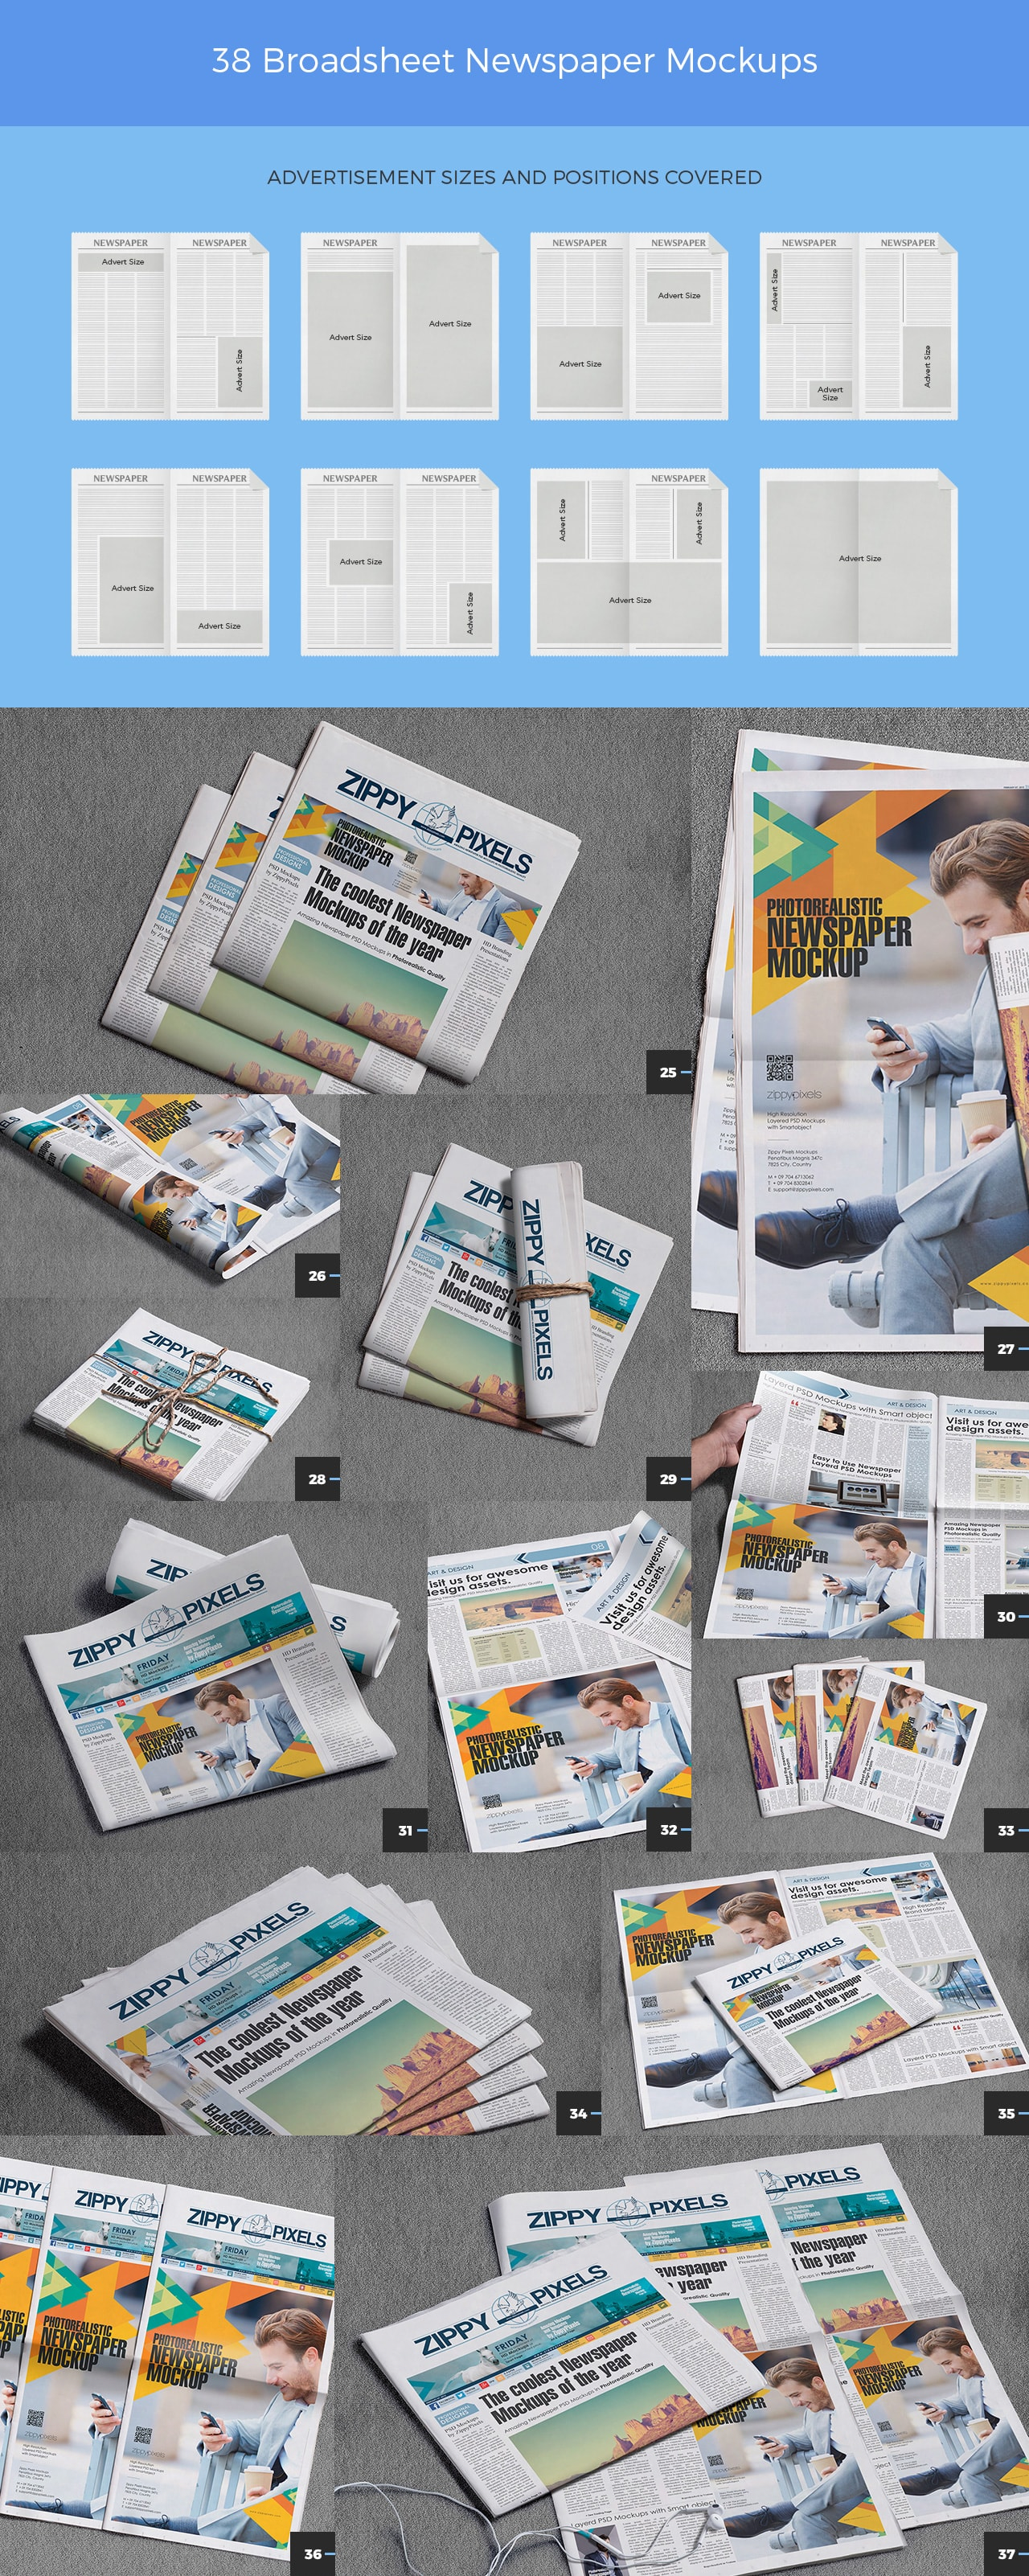 02-newspaper-advertisement-mockups-bundle-broadsheet-size-1